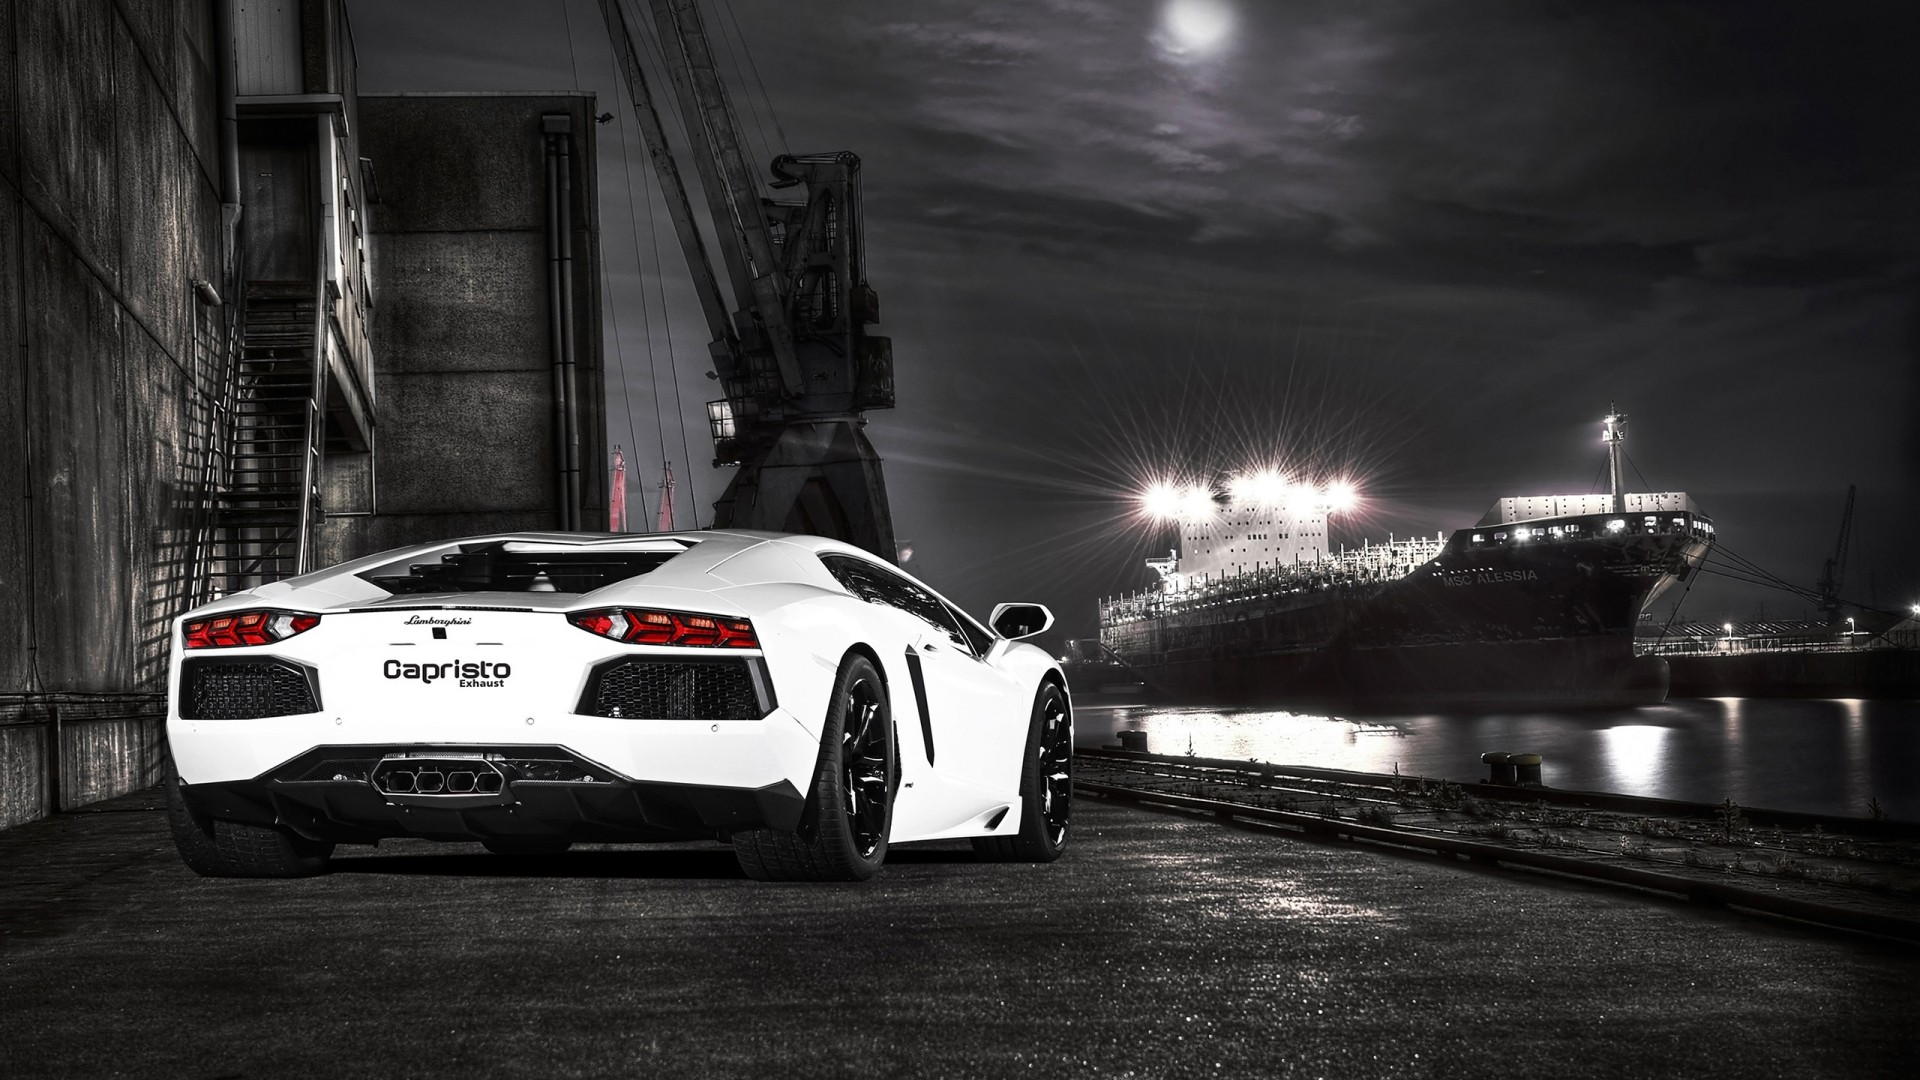 Good Wallpaper Night Lamborghini - 292130  Snapshot-84192.jpg